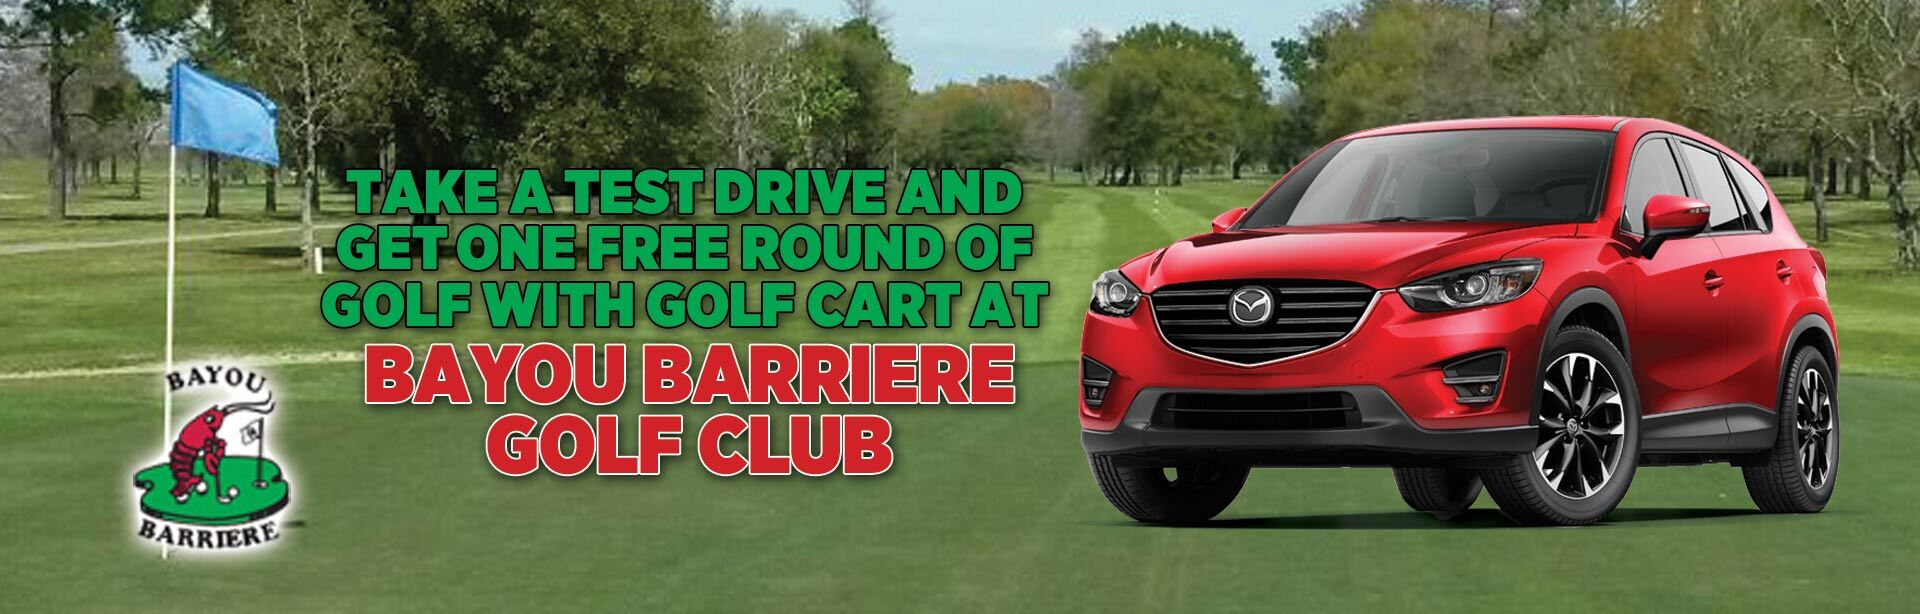 Bayou Barriere Golf Test Drive Offer